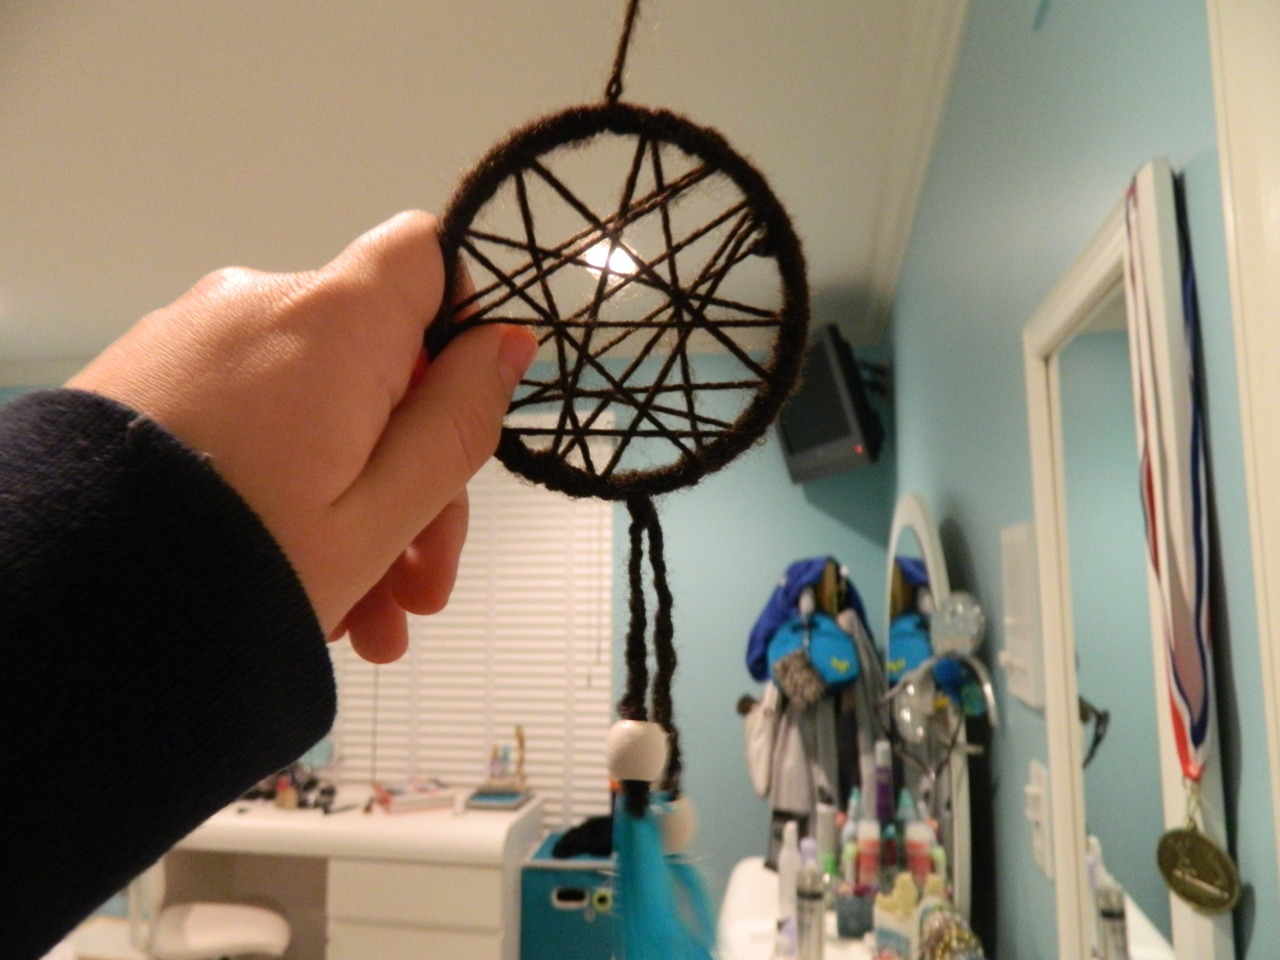 my friend's dreamcatcher